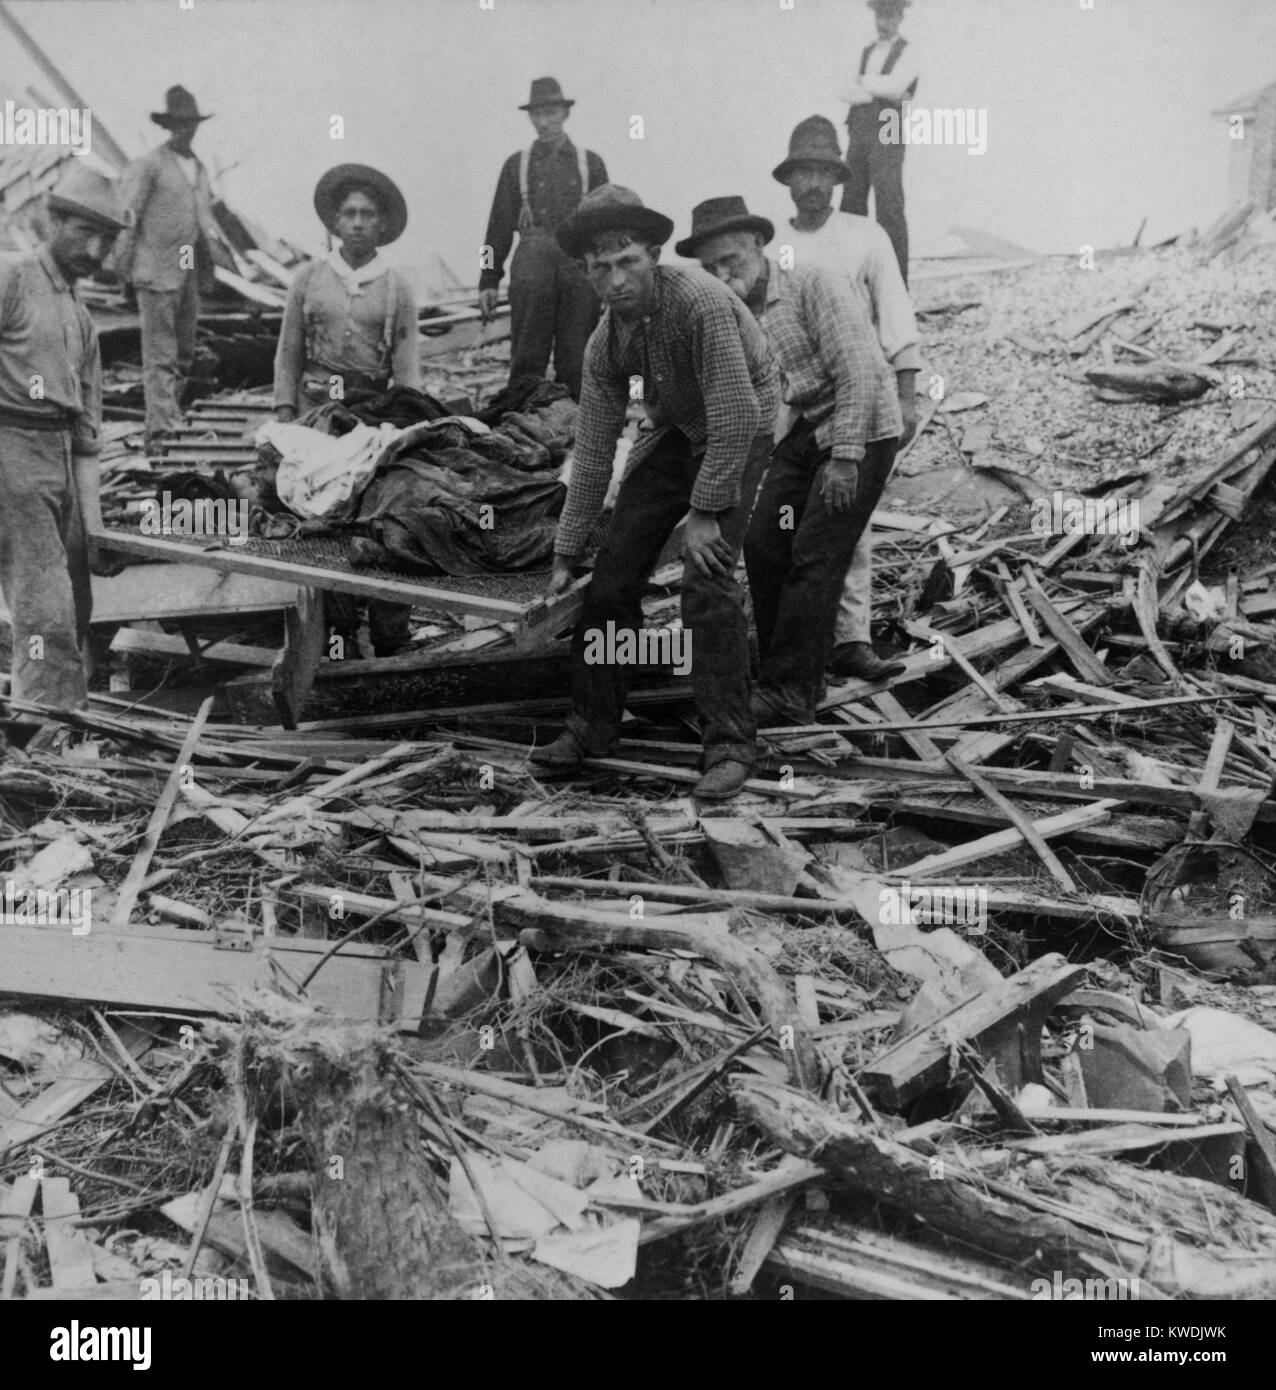 Men carrying bodies on stretcher, surrounded by wreckage of the hurricane in Galveston, Texas, Sept. 1900. The disaster - Stock Image